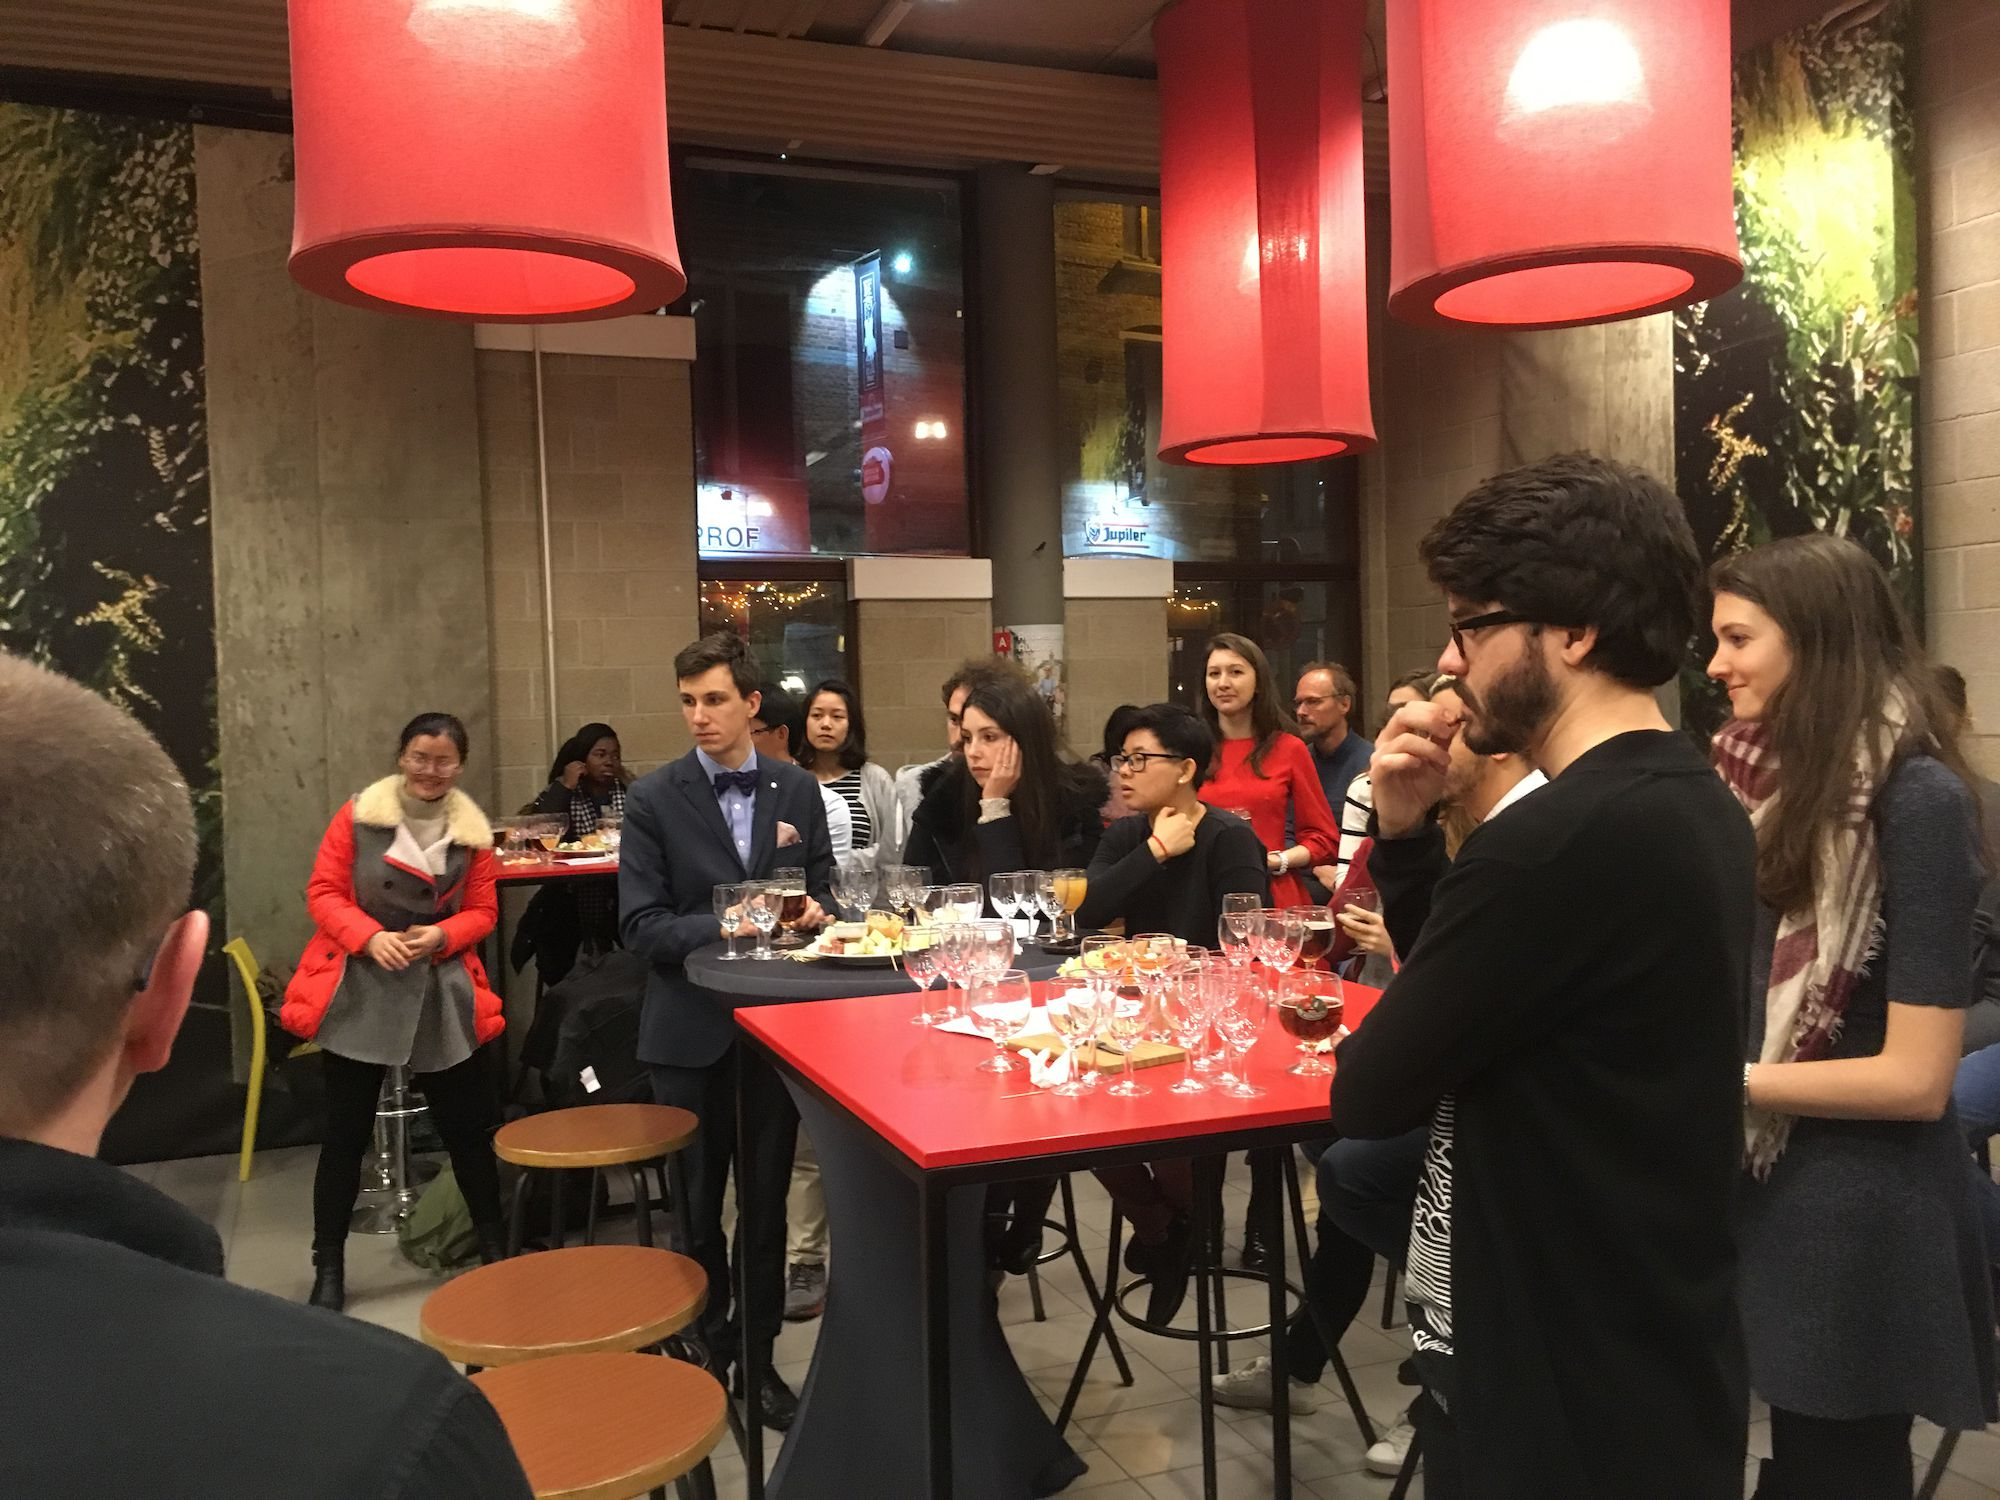 EGEI students enjoying Belgian food and drinks